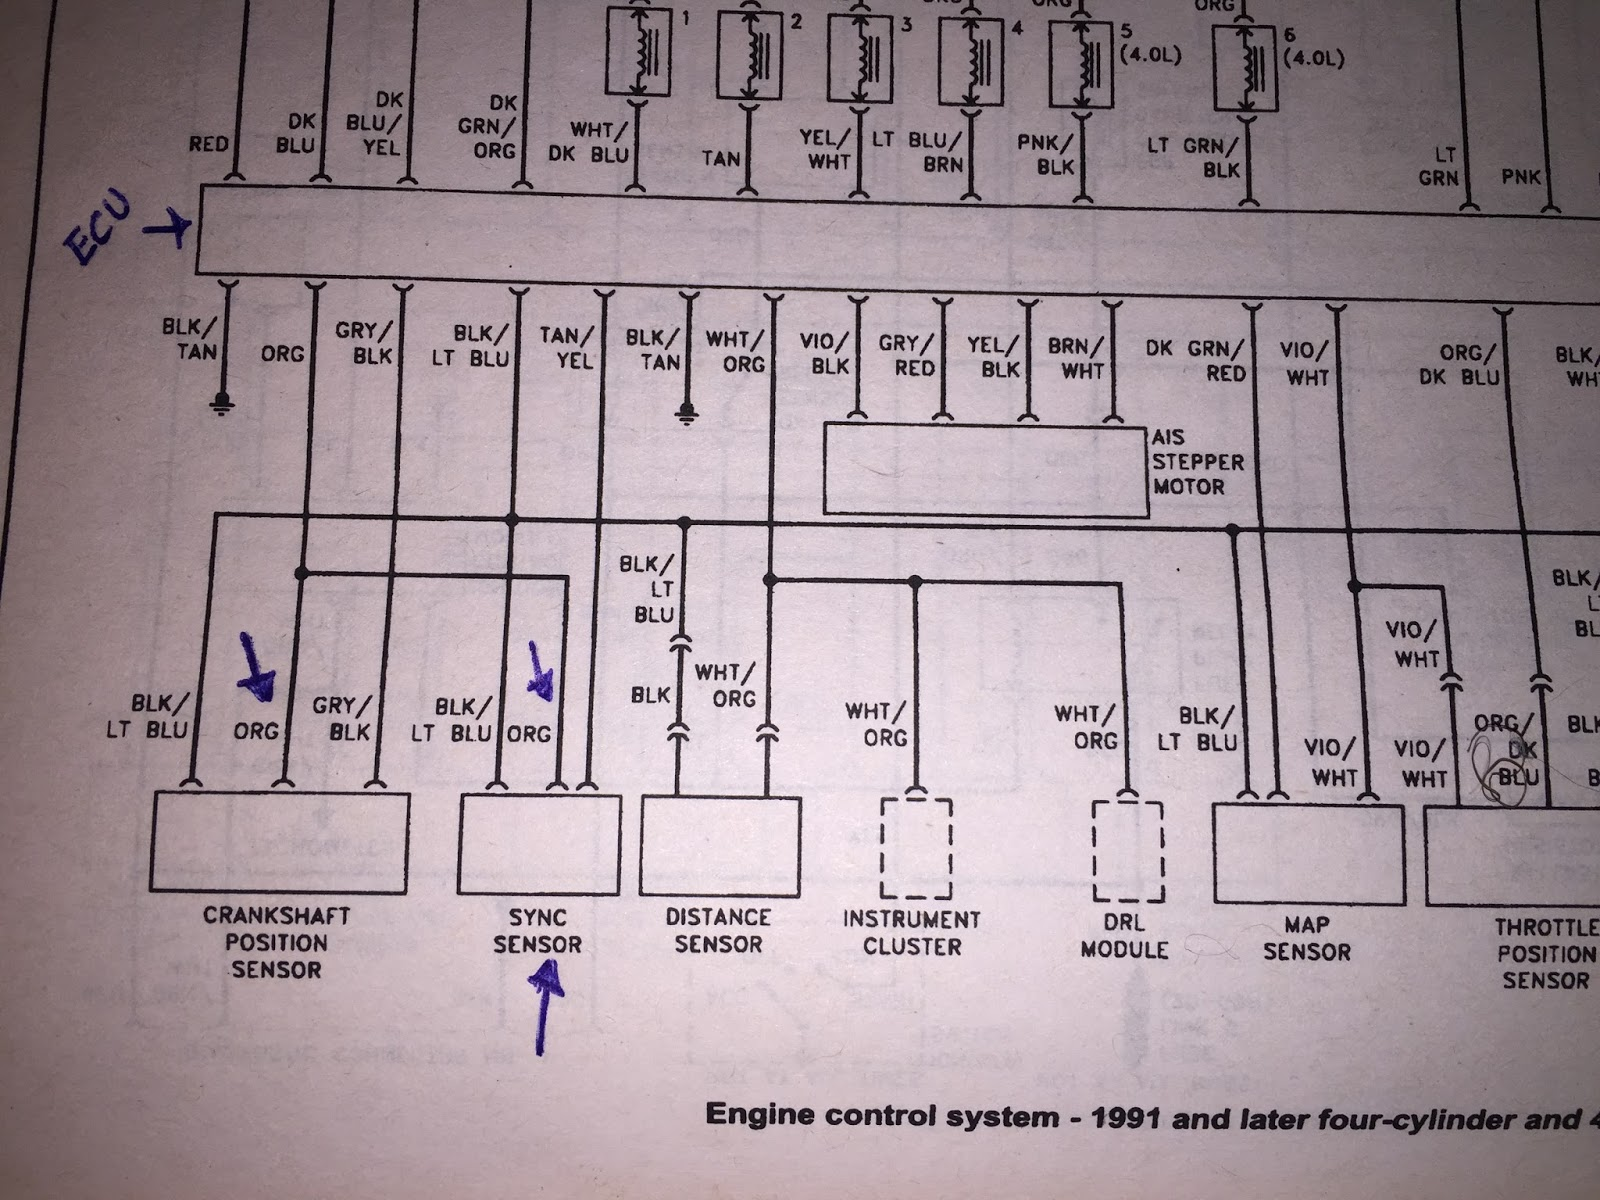 small resolution of 1991 xj crank no start cps wiring bad ground jeepforum comhere is a copy